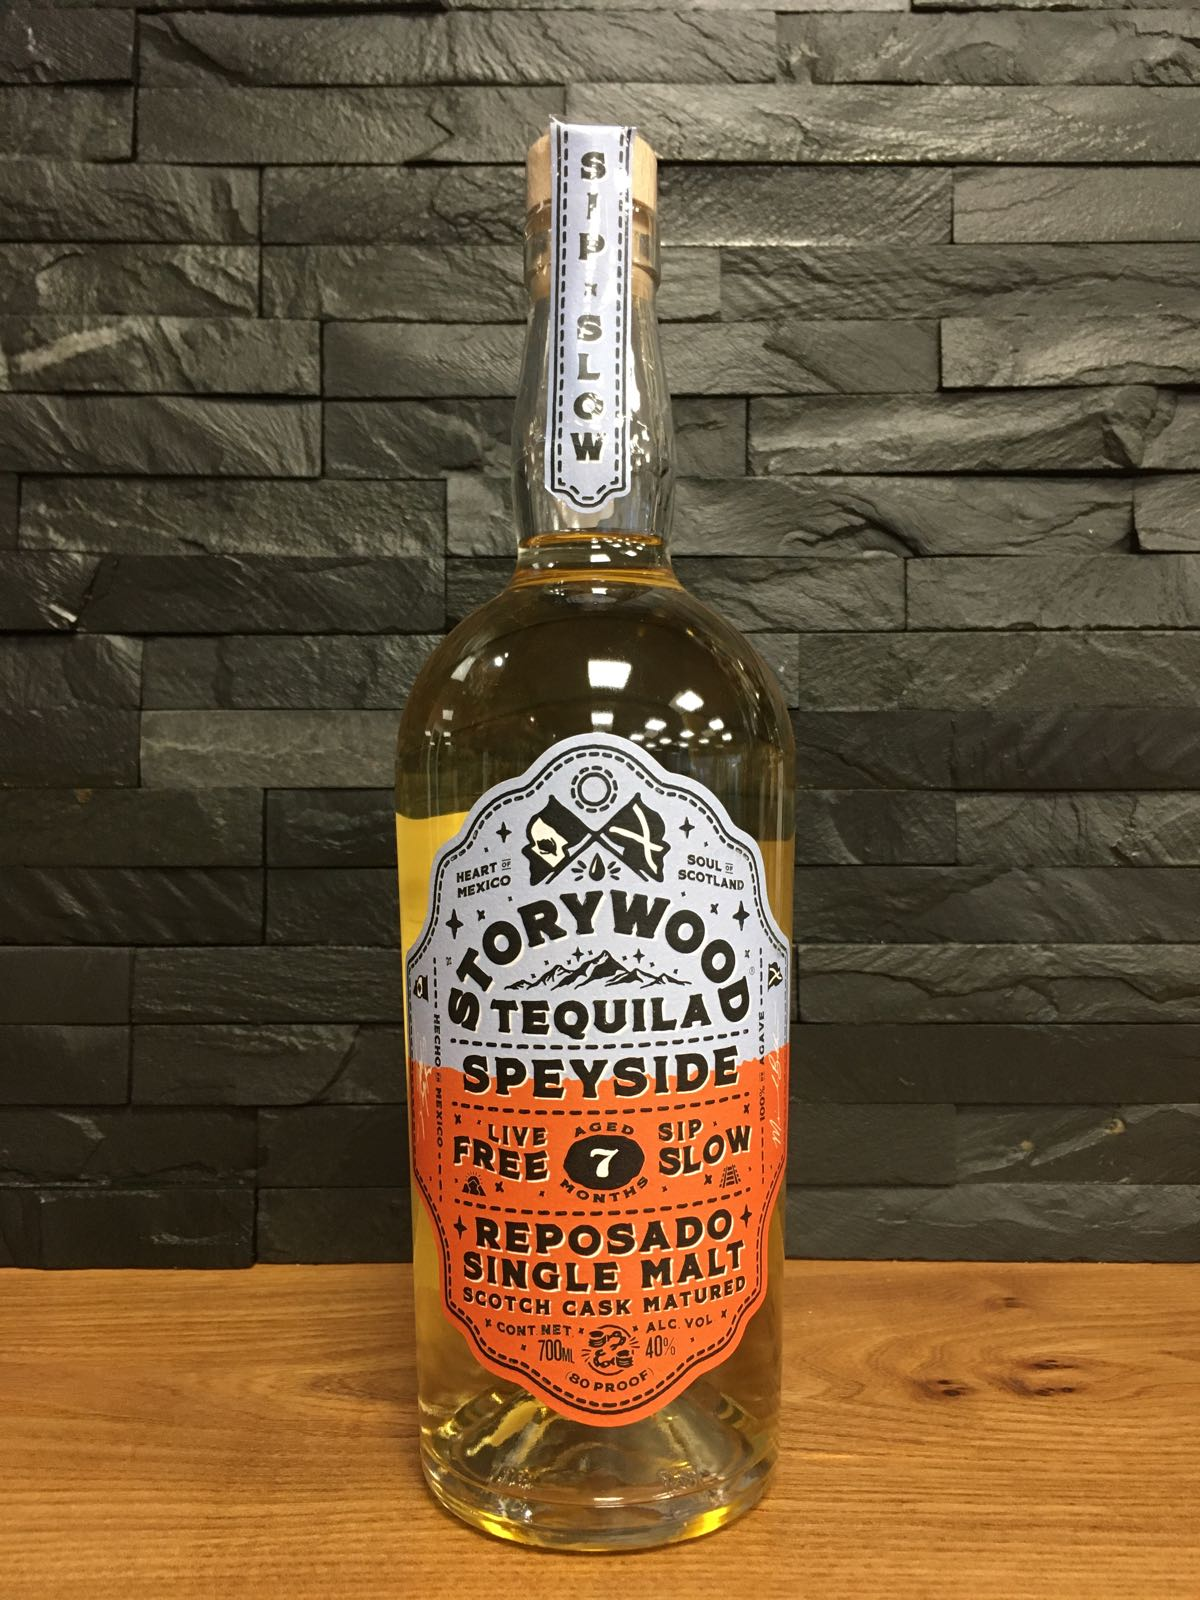 Storywood Tequila Speyside 7 70cl